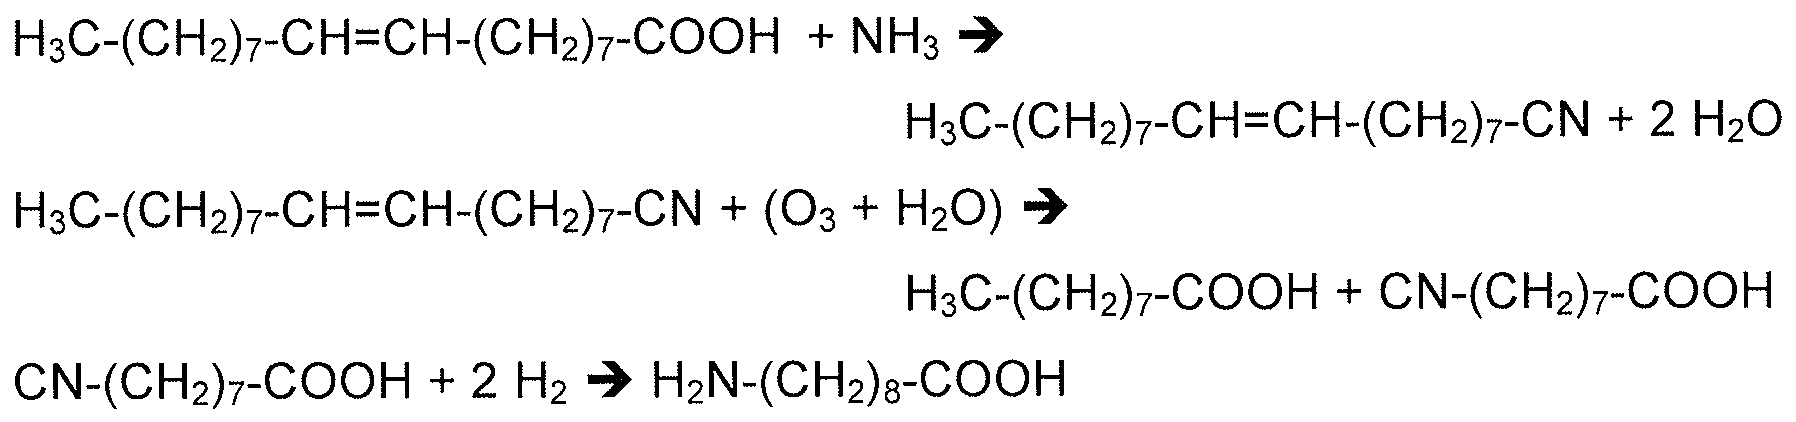 H 3 C CH 2 7 COOH The Synthesis Results In Pelargonic As A By Product